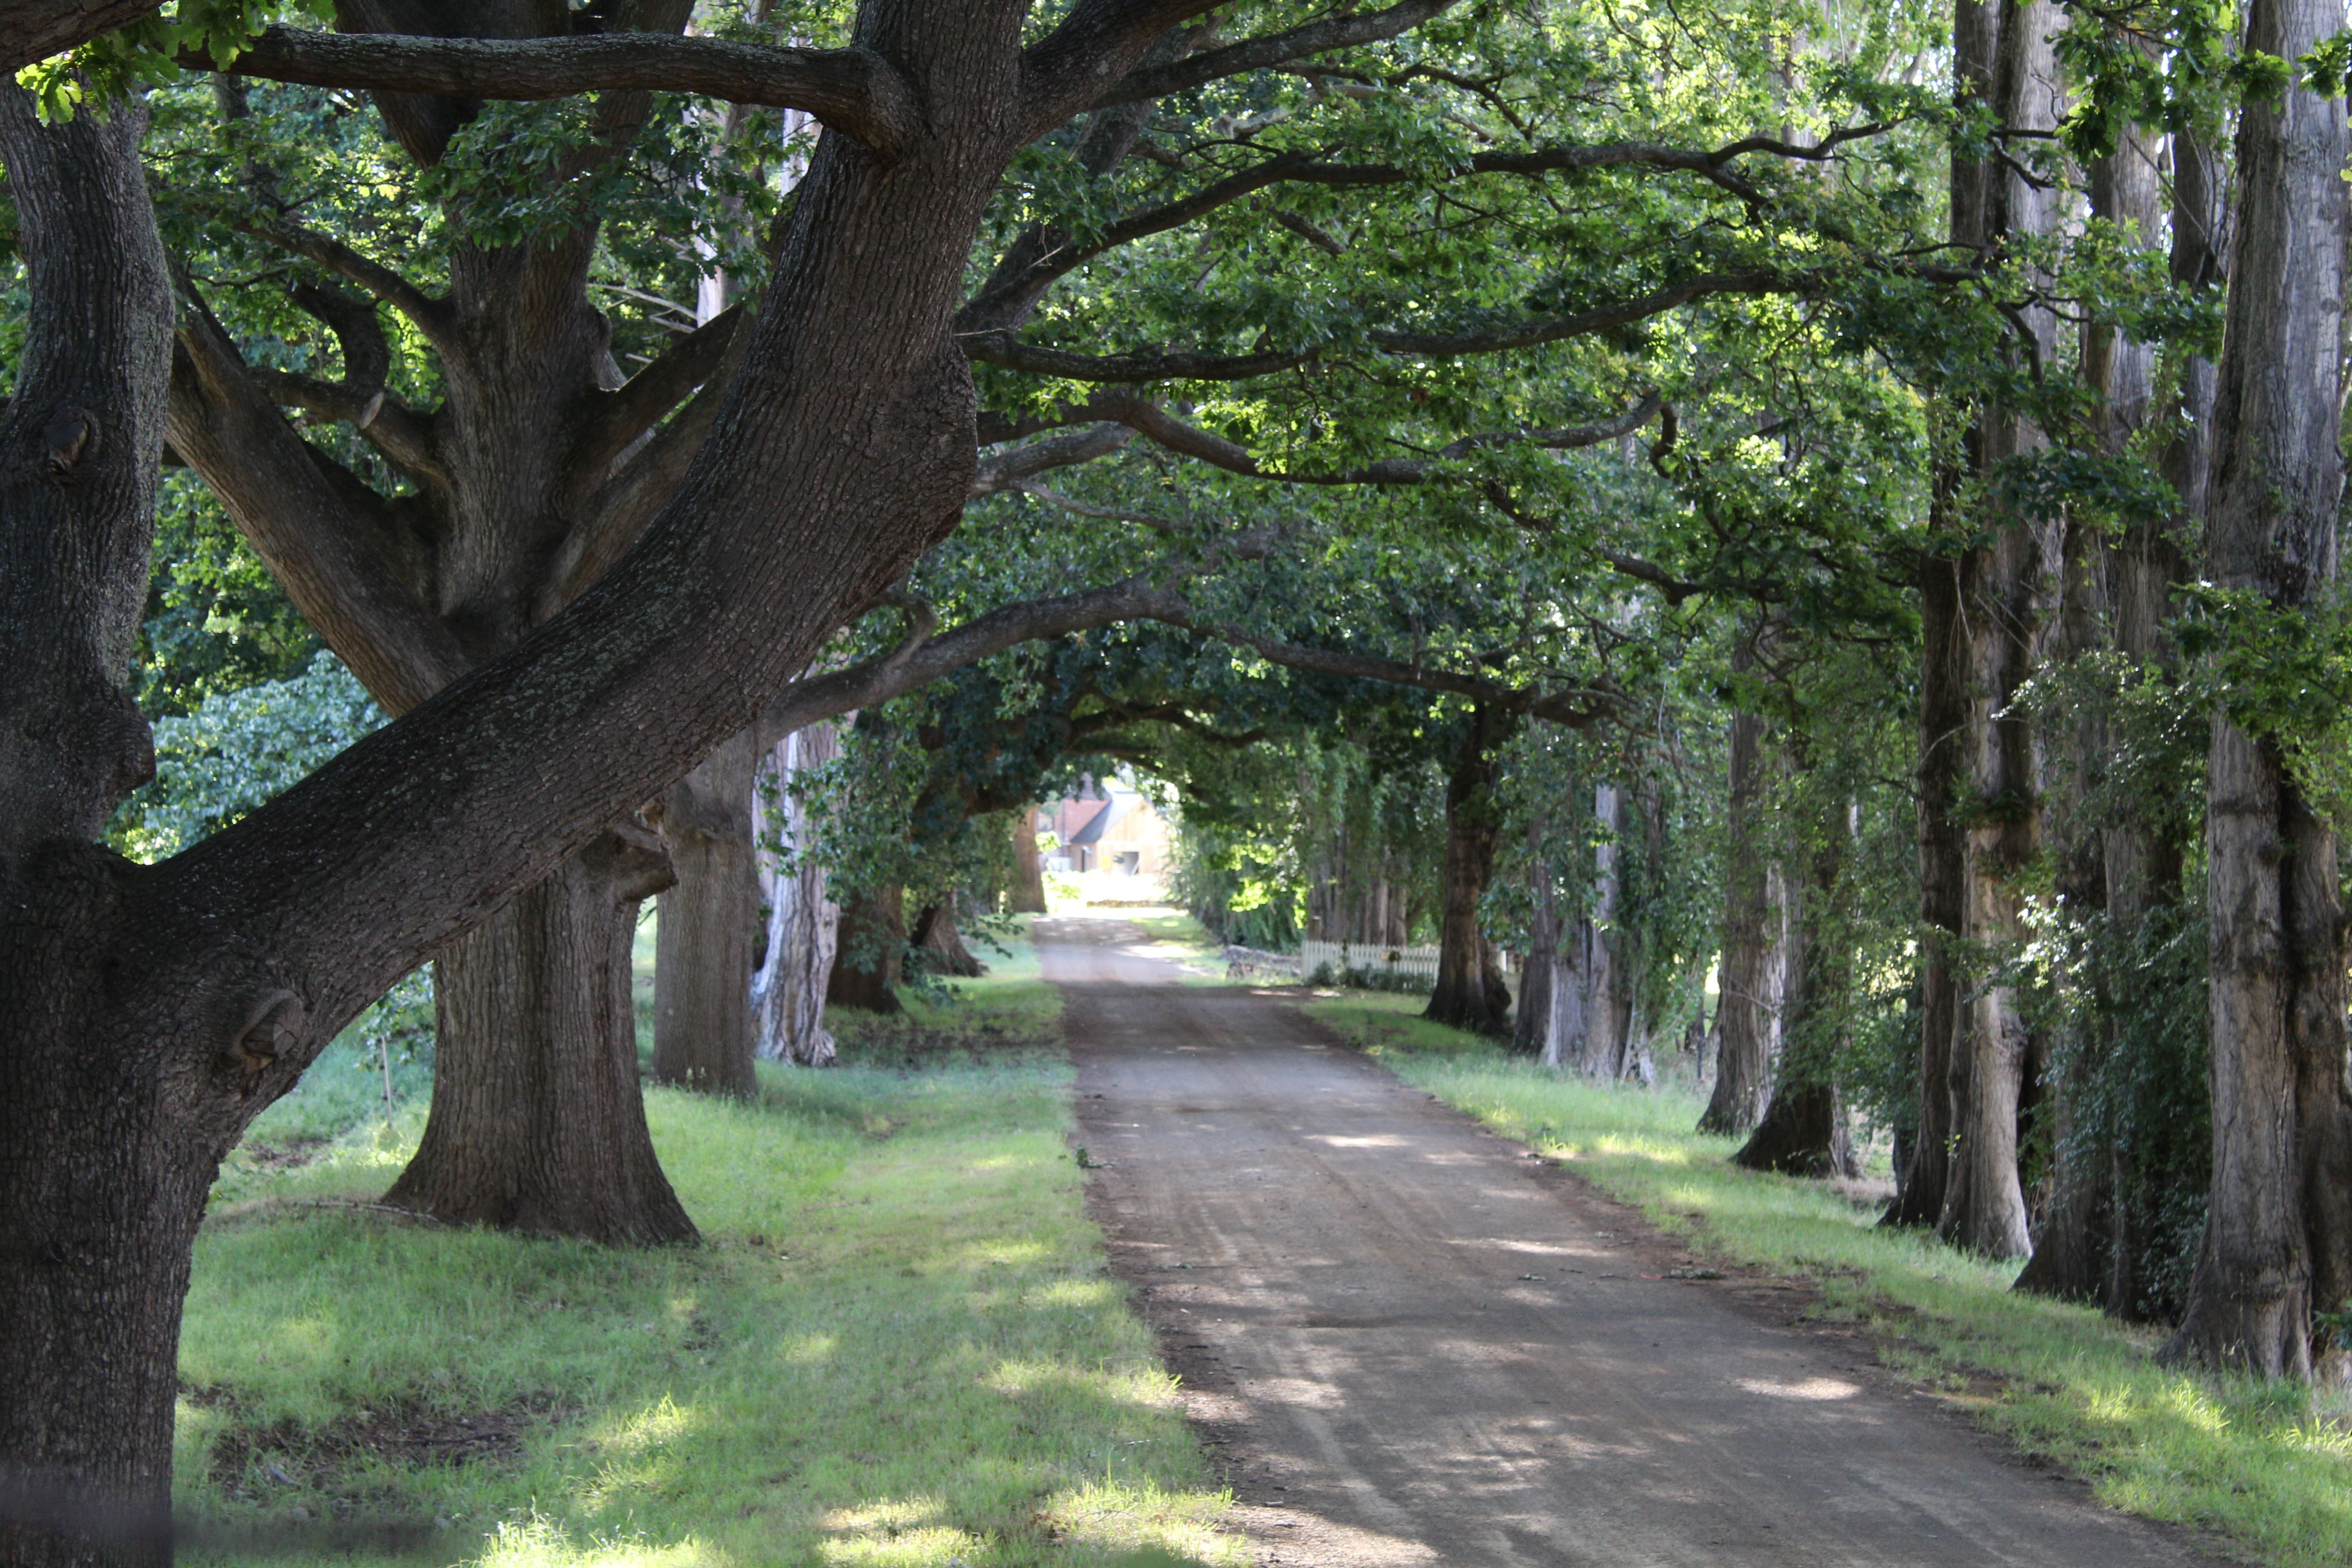 Oak Tree's aligning a gravel road puts me in mind of a childs Fairy Tale story - Redlands, Tasmania.